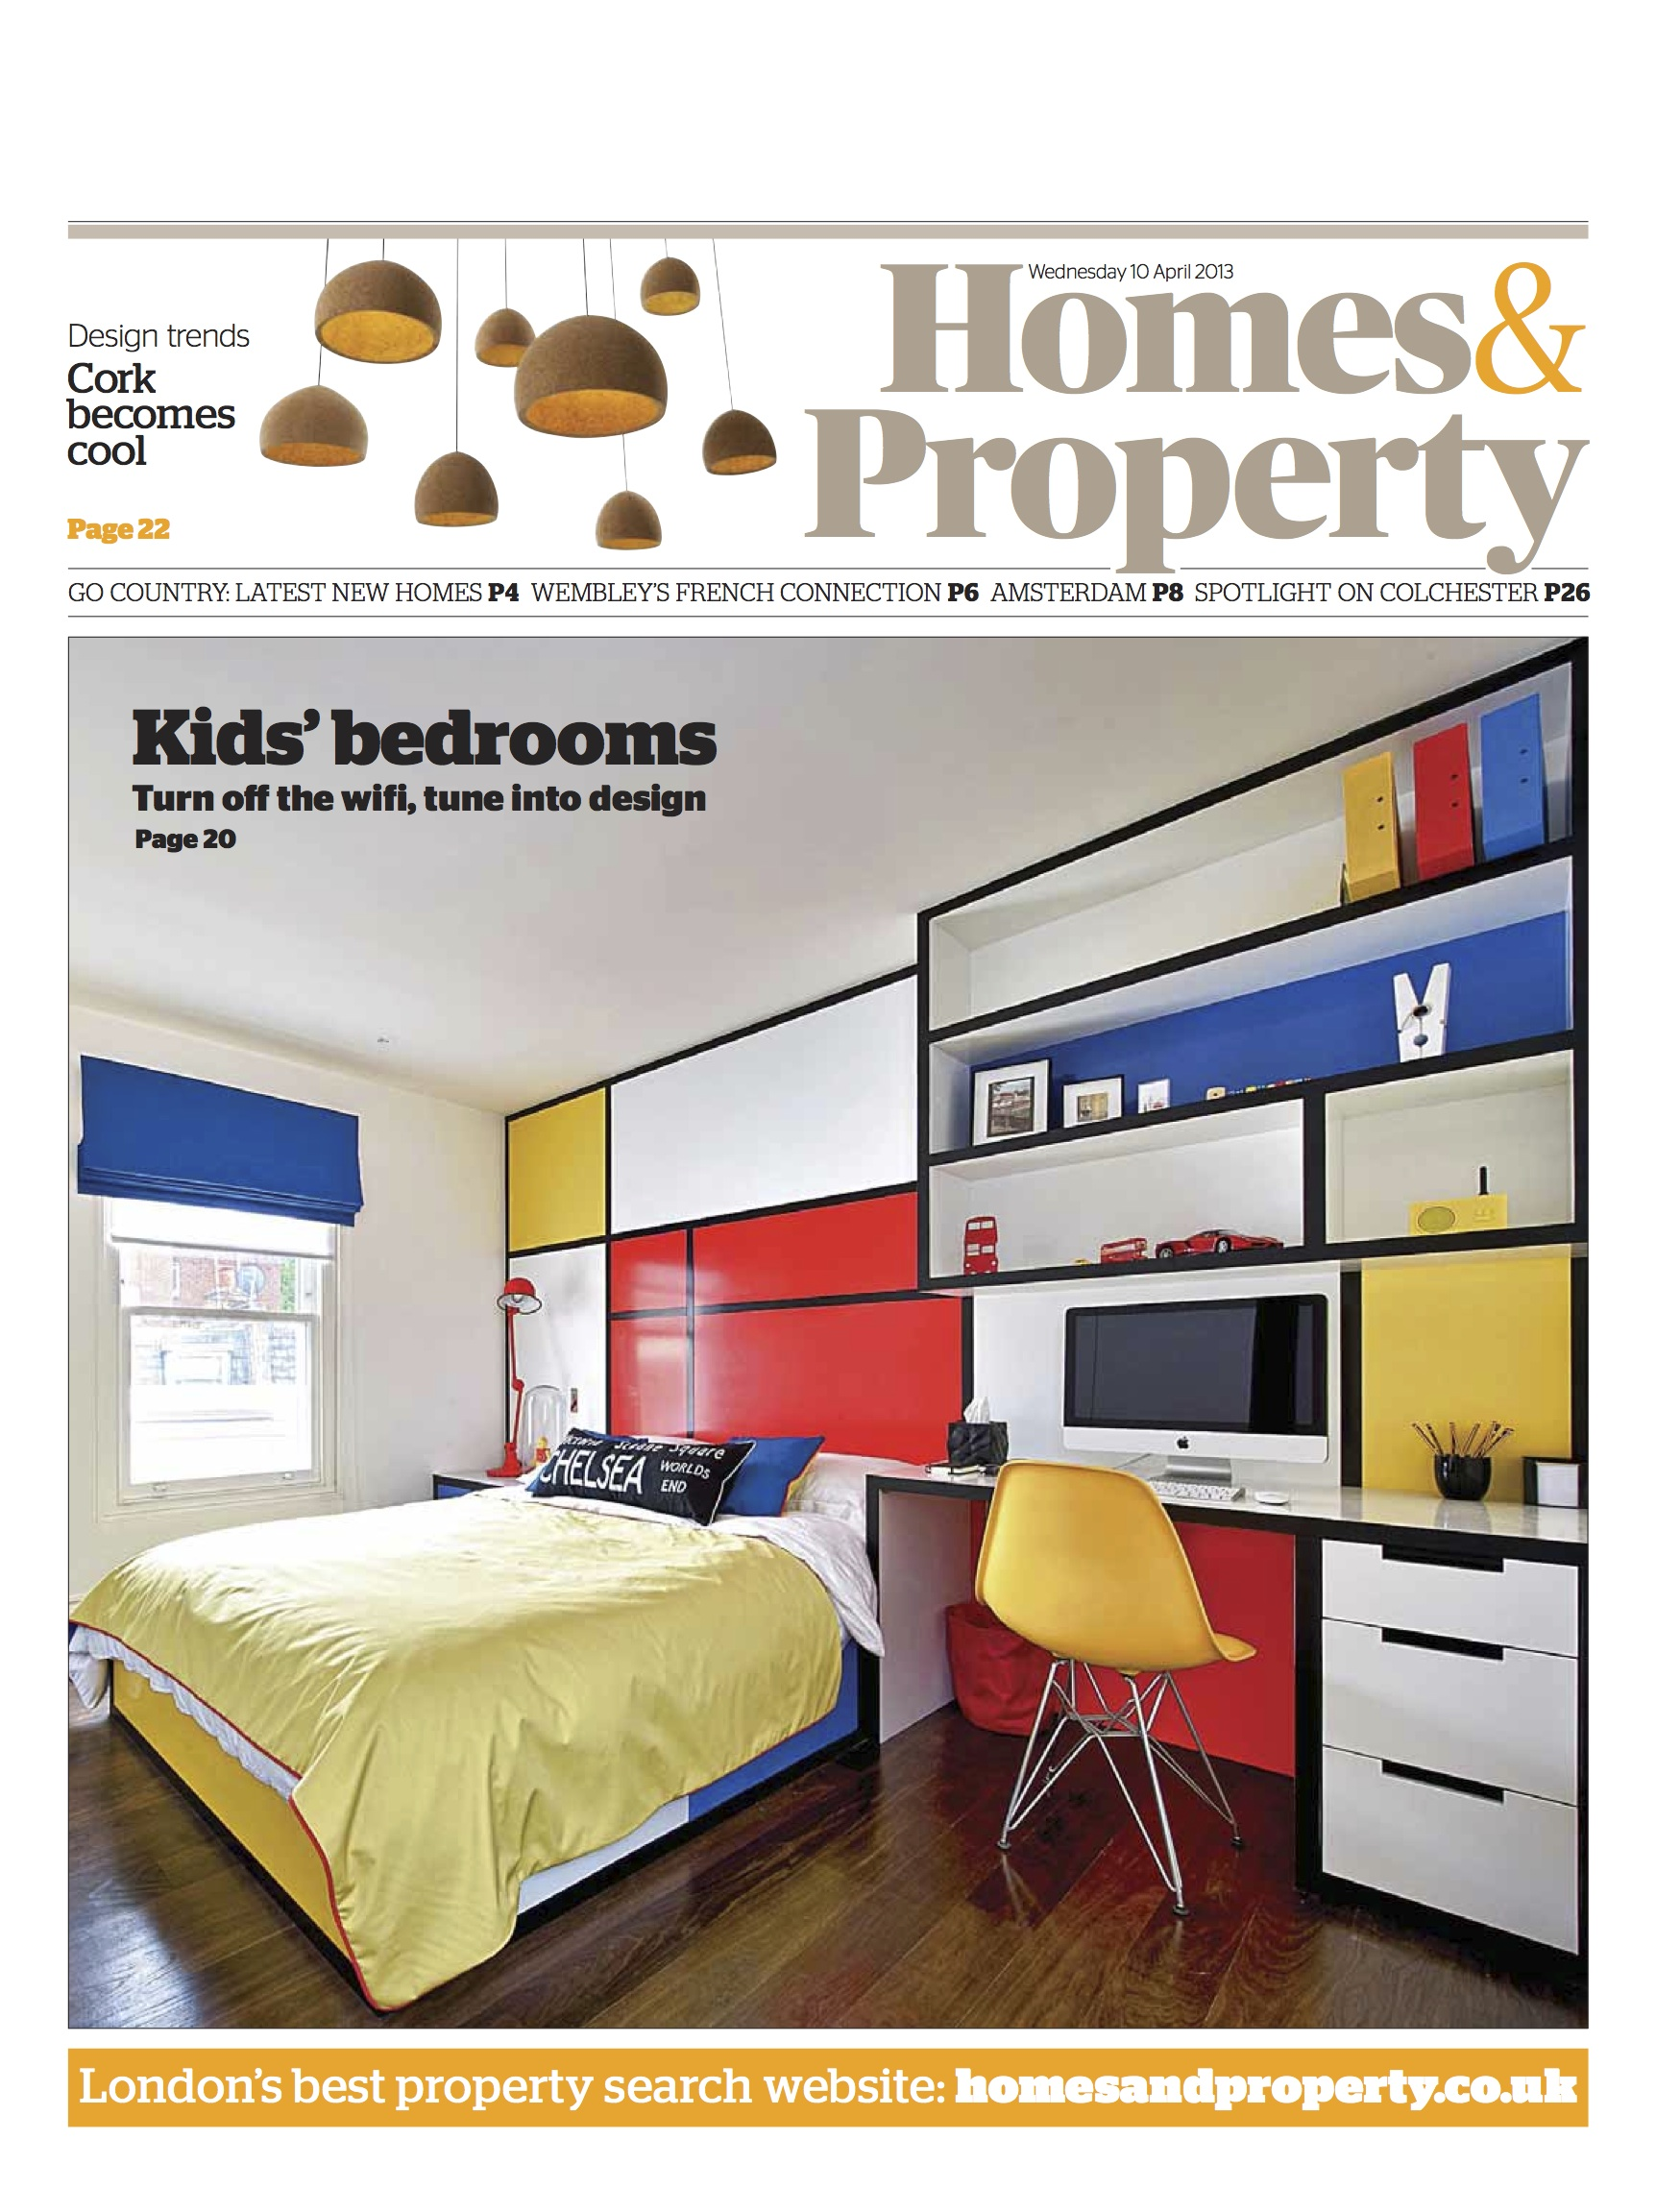 20130410_homes_property_cover.jpg